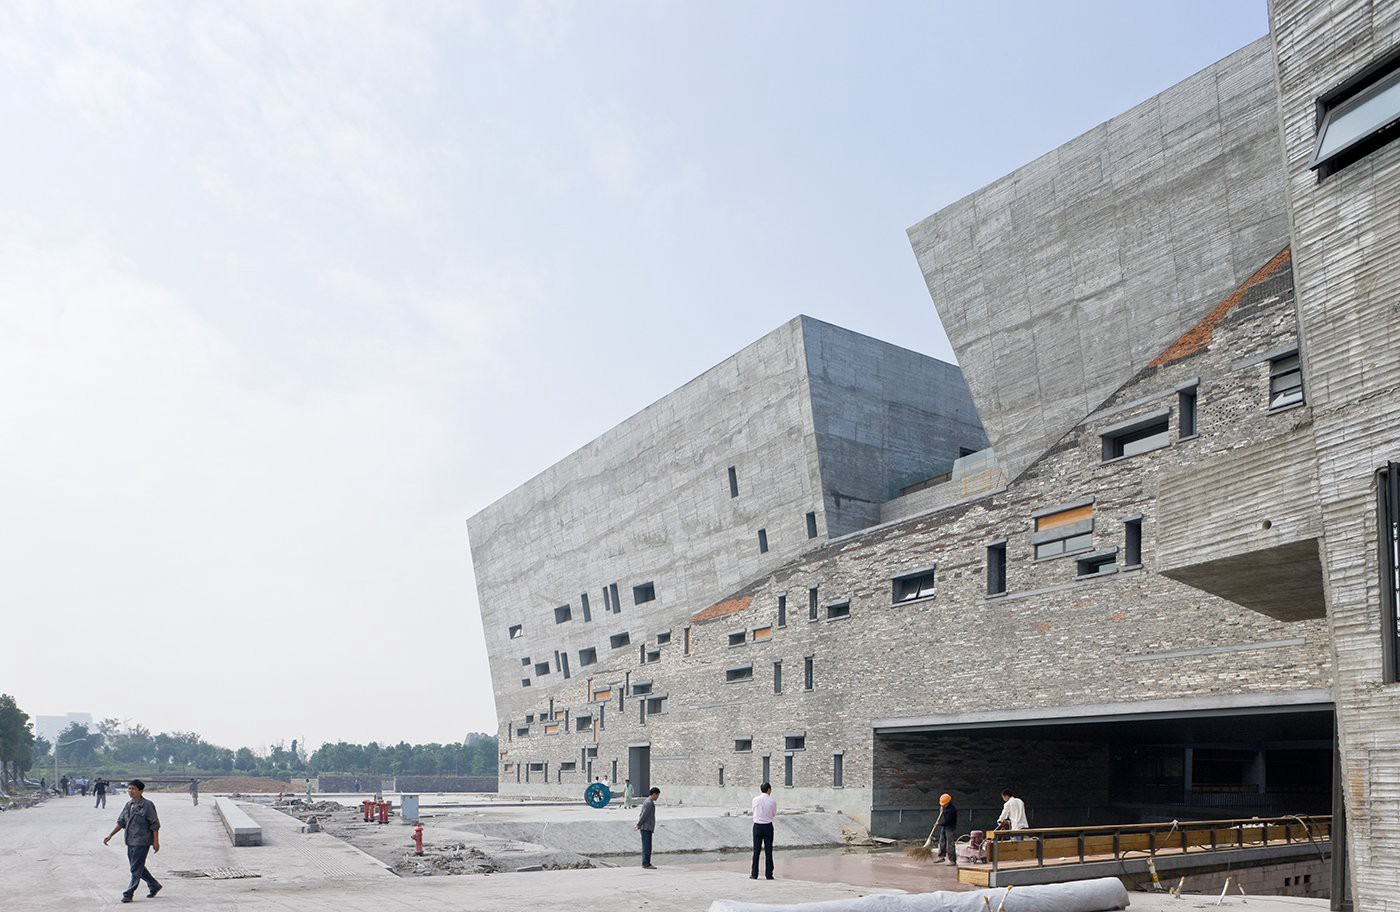 Completed in 2008, Wang Shu's Ningbo History Museum is both an architectural masterpiece and a testament to his approach to localized materials. He used recycled material from traditional Chinese building remains to construct the museum. (Photo: Iwan Baan for Amateur Architecture Studio, Beauty and the East)